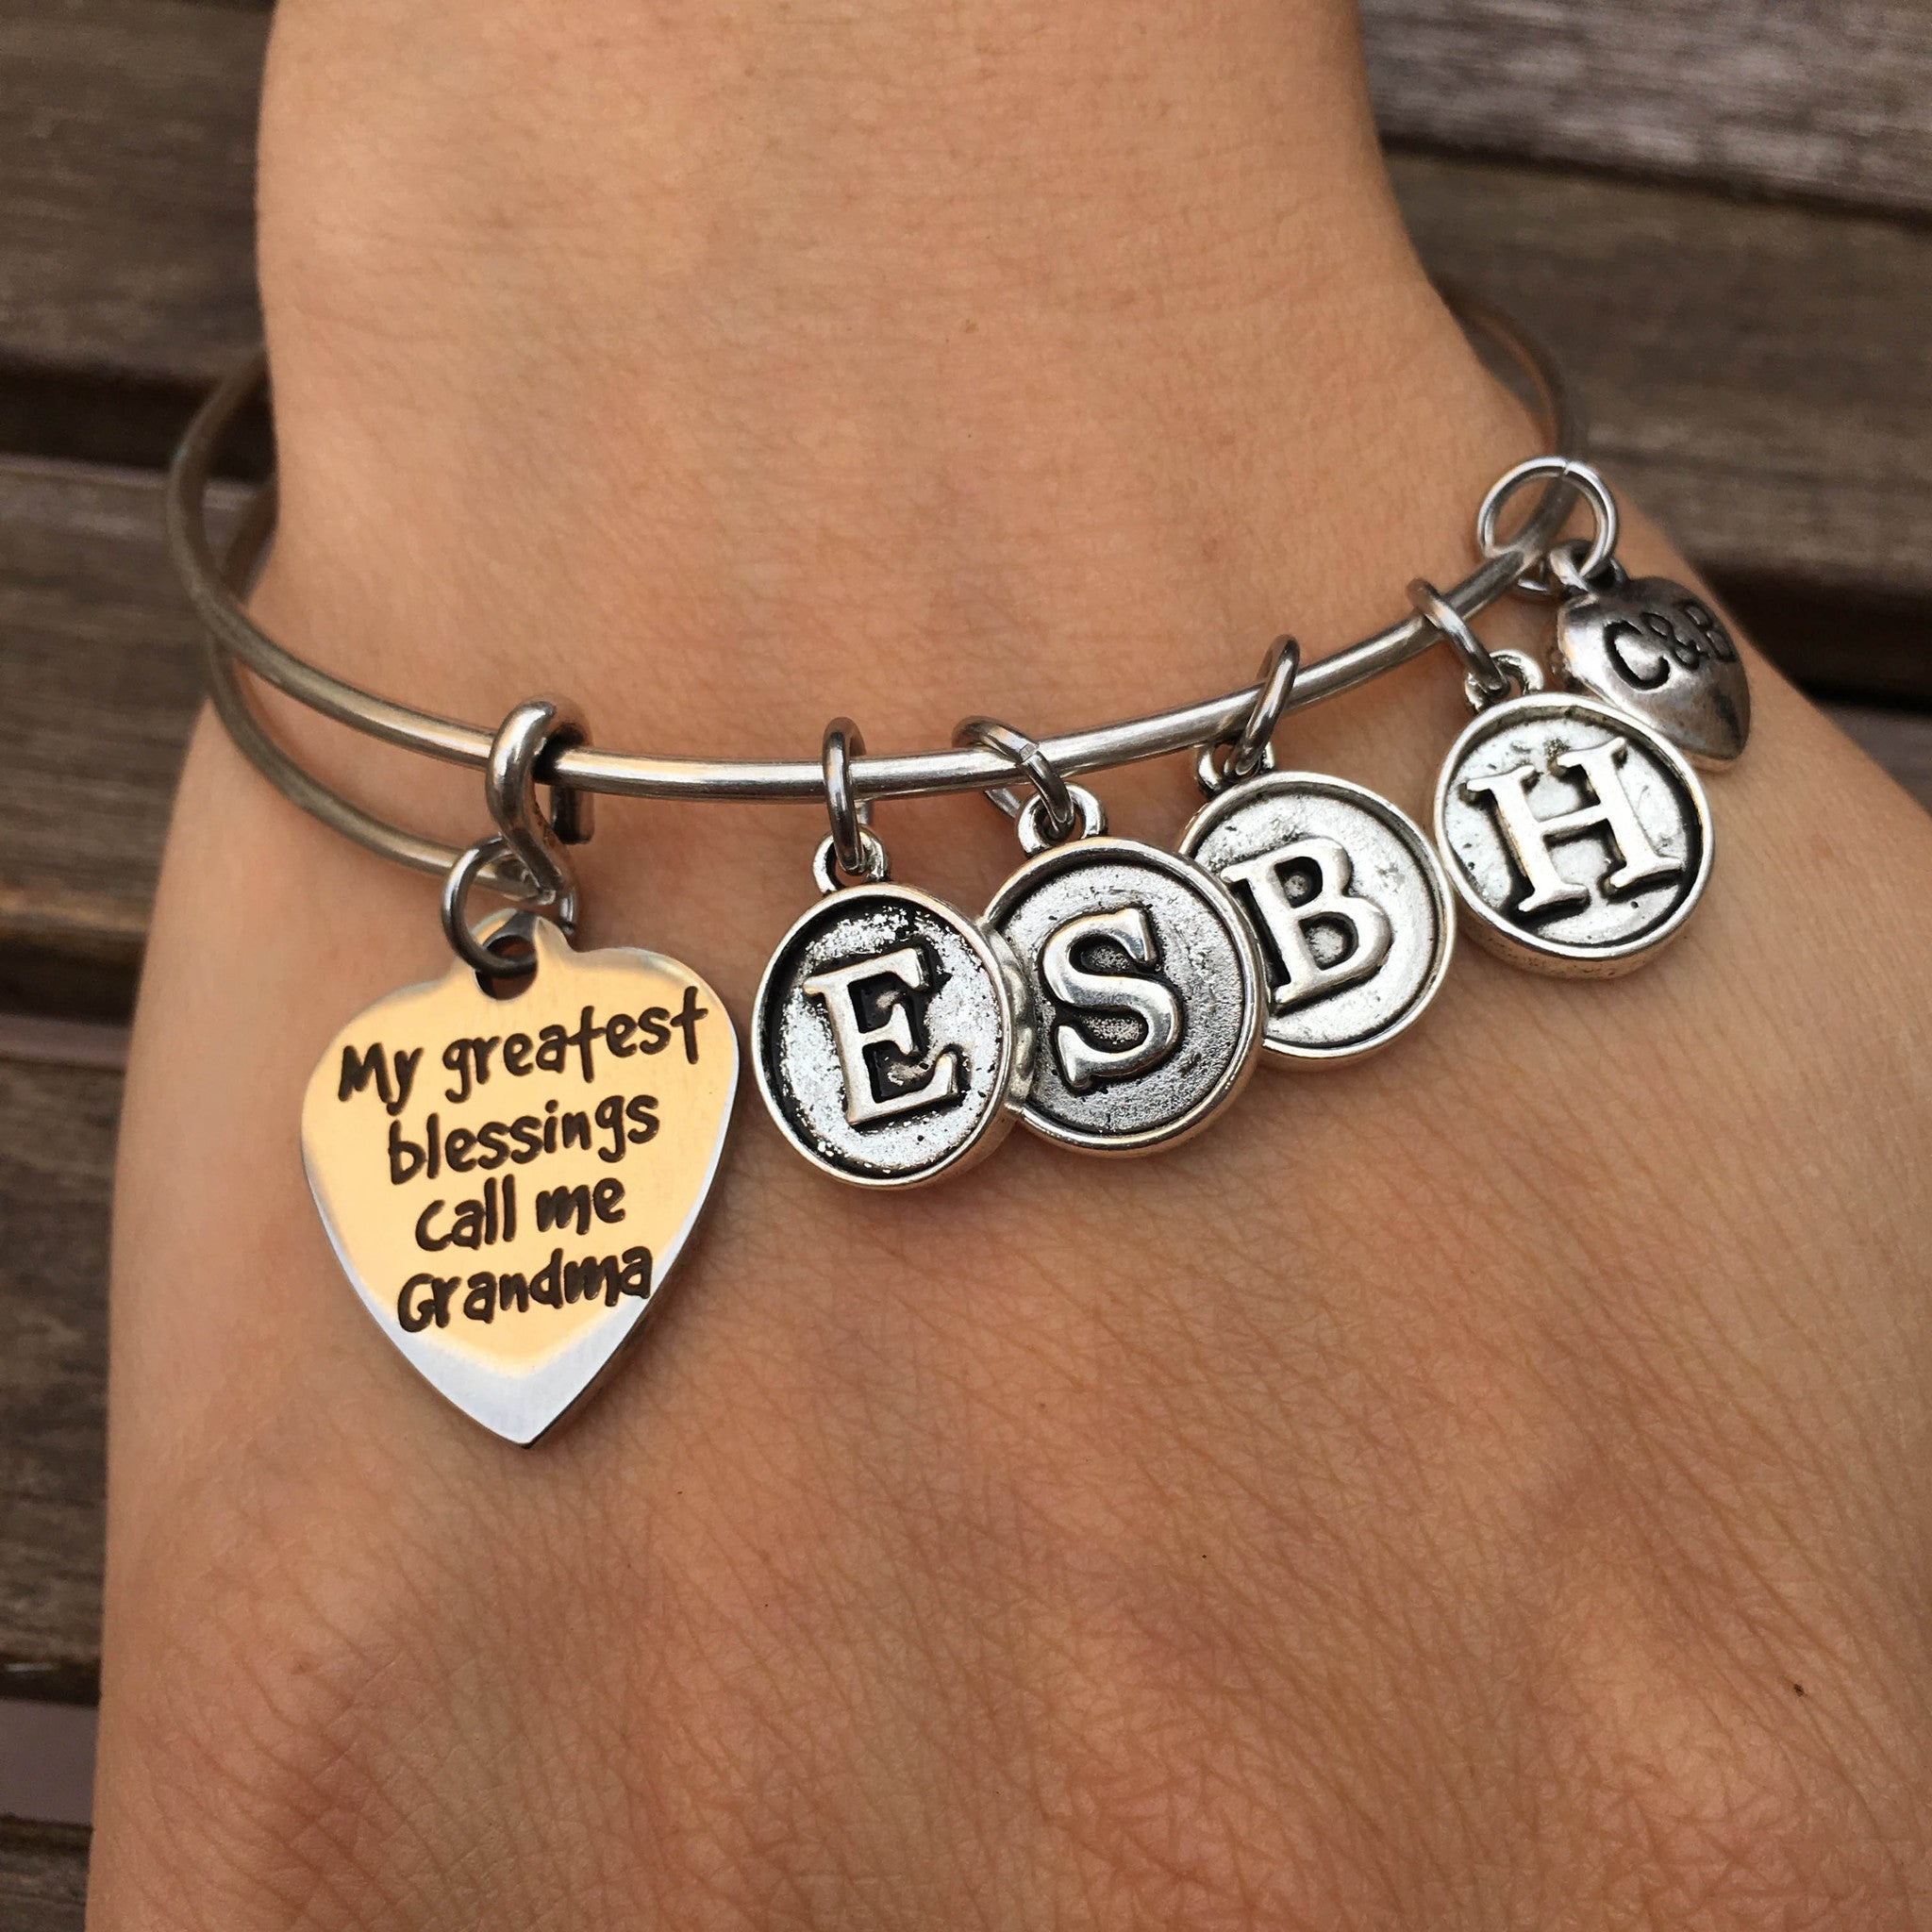 product bracelet jewelry overstock toggle on closure engraved free steel with heart grandchild shipping watches stainless over charm orders